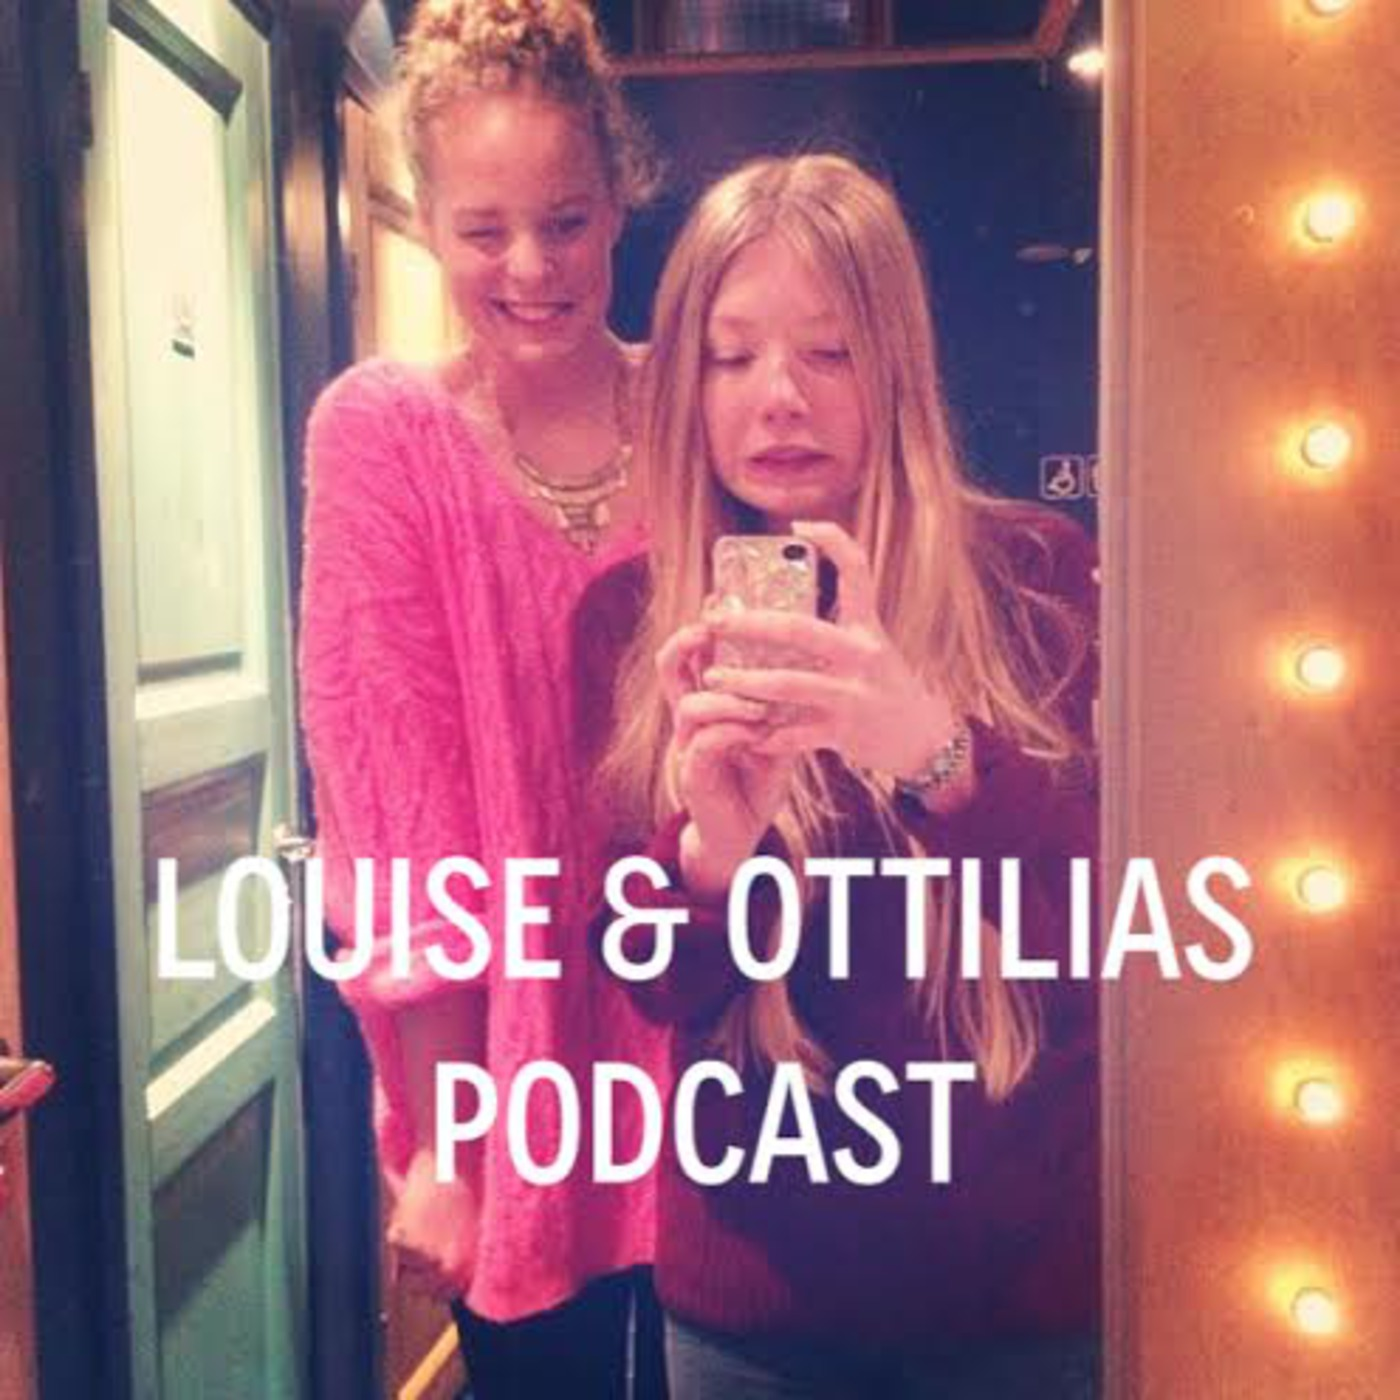 Louise & Ottilia's Podcast